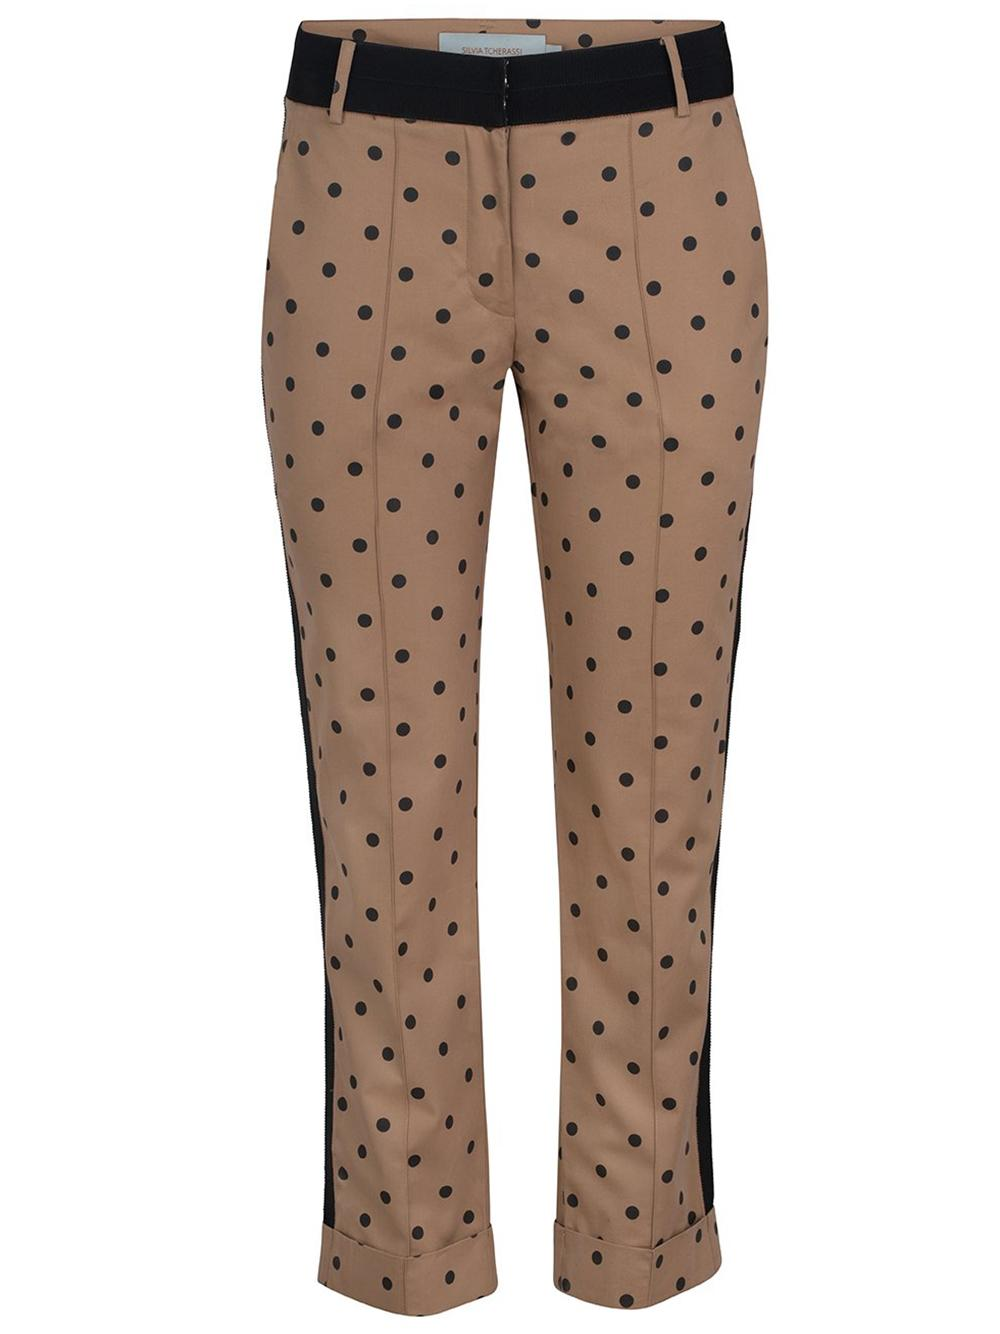 Garmet Polka Dot Pant Item # GARMET PANT